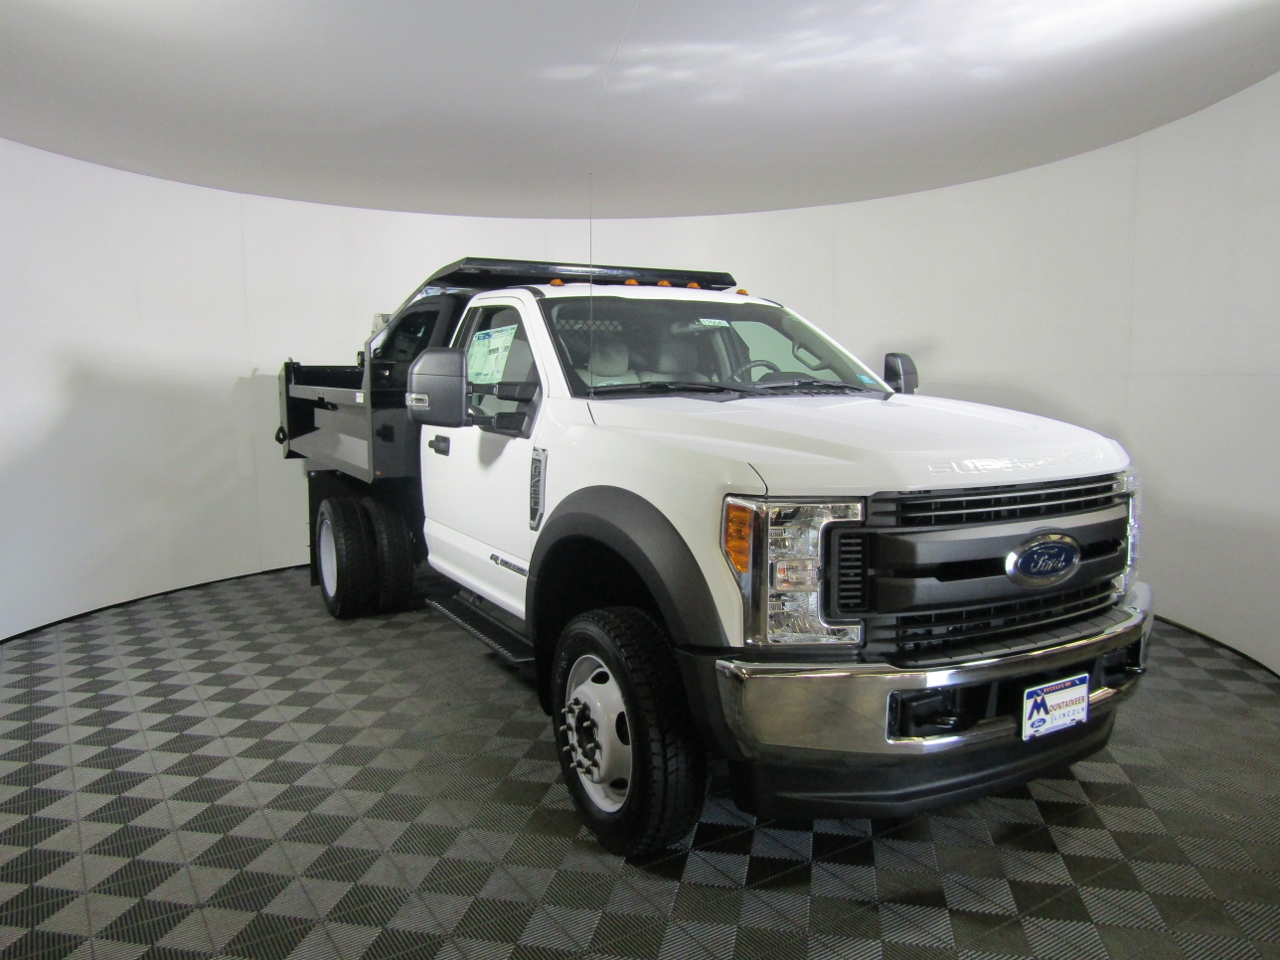 2017 F-450 Regular Cab DRW 4x4, Knapheide Dump Body #176043 - photo 6